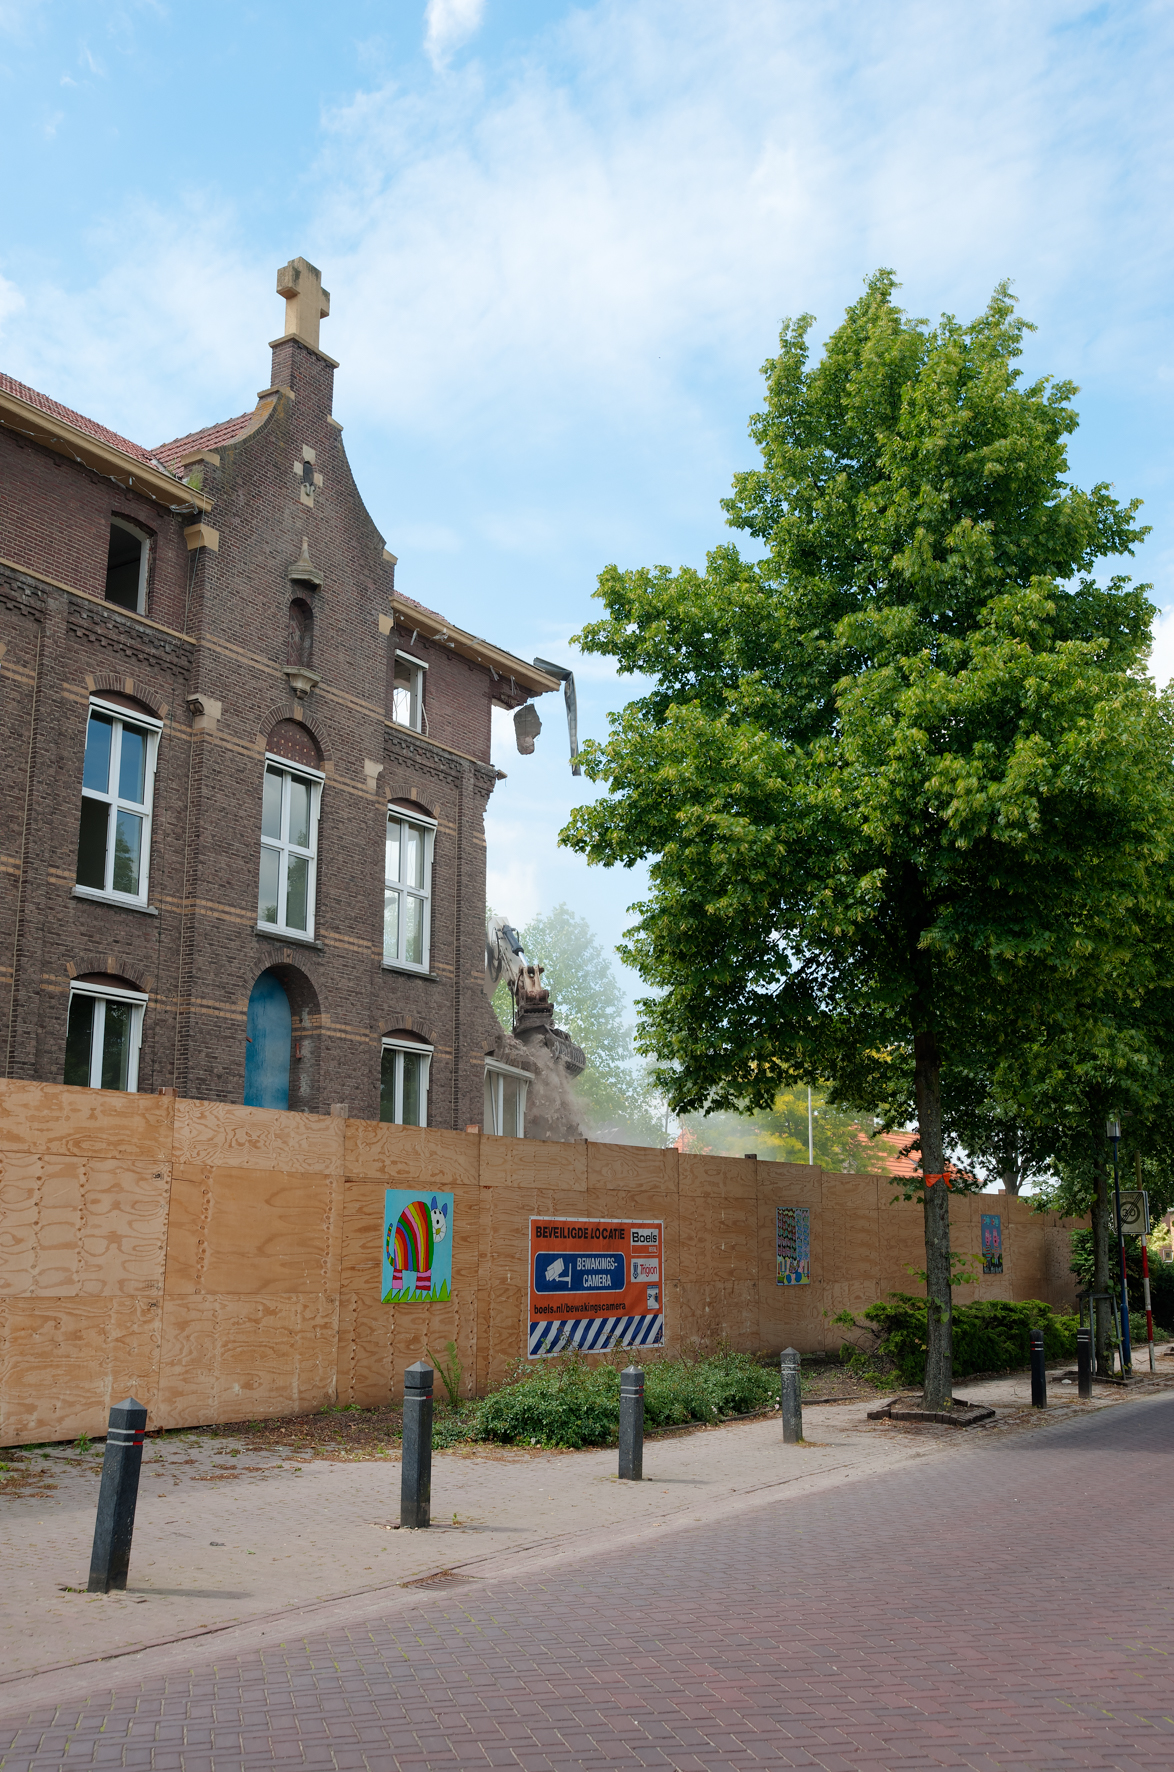 Rector_Driessenstraat-161.jpg